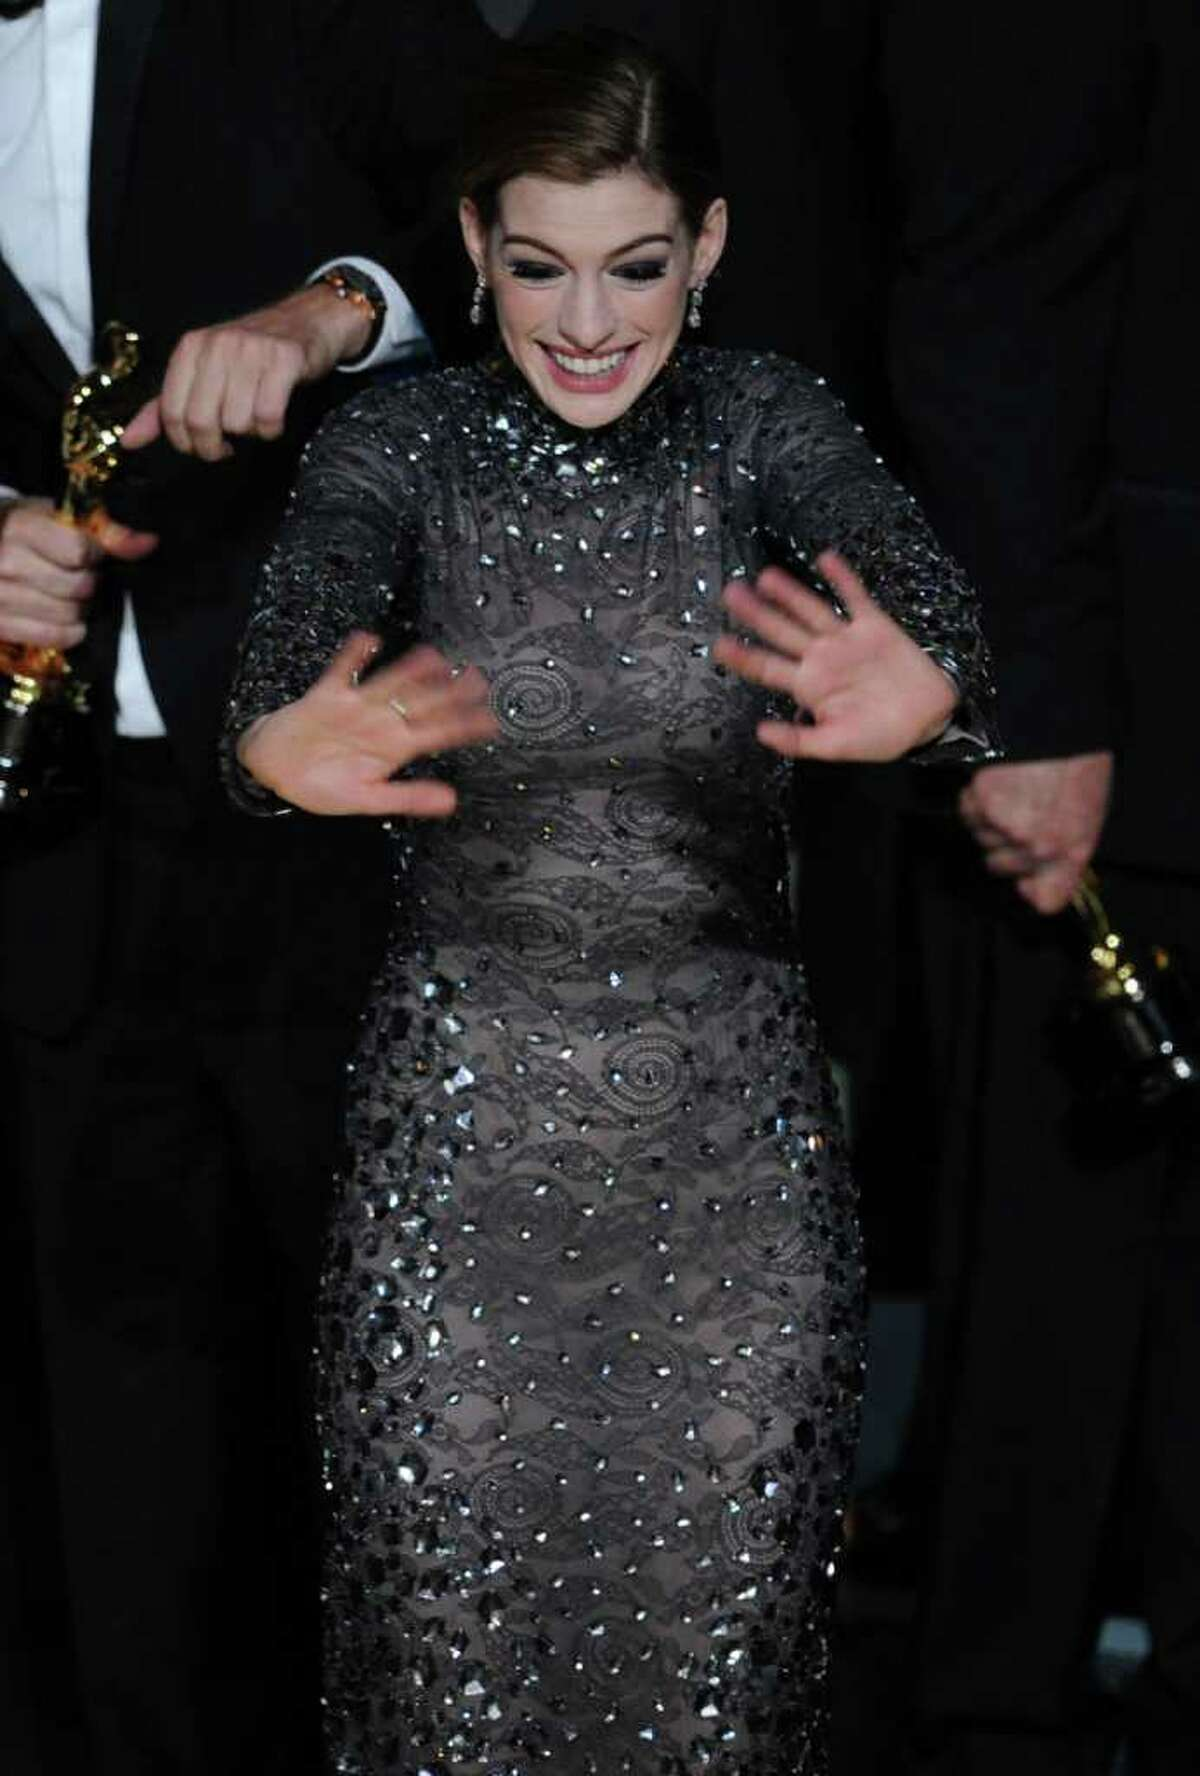 HOLLYWOOD, CA - FEBRUARY 27: Host Anne Hathaway waves goodbye at the end of the 83rd Annual Academy Awards held at the Kodak Theatre on February 27, 2011 in Hollywood, California. (Photo by Kevin Winter/Getty Images) *** Local Caption *** Anne Hathaway